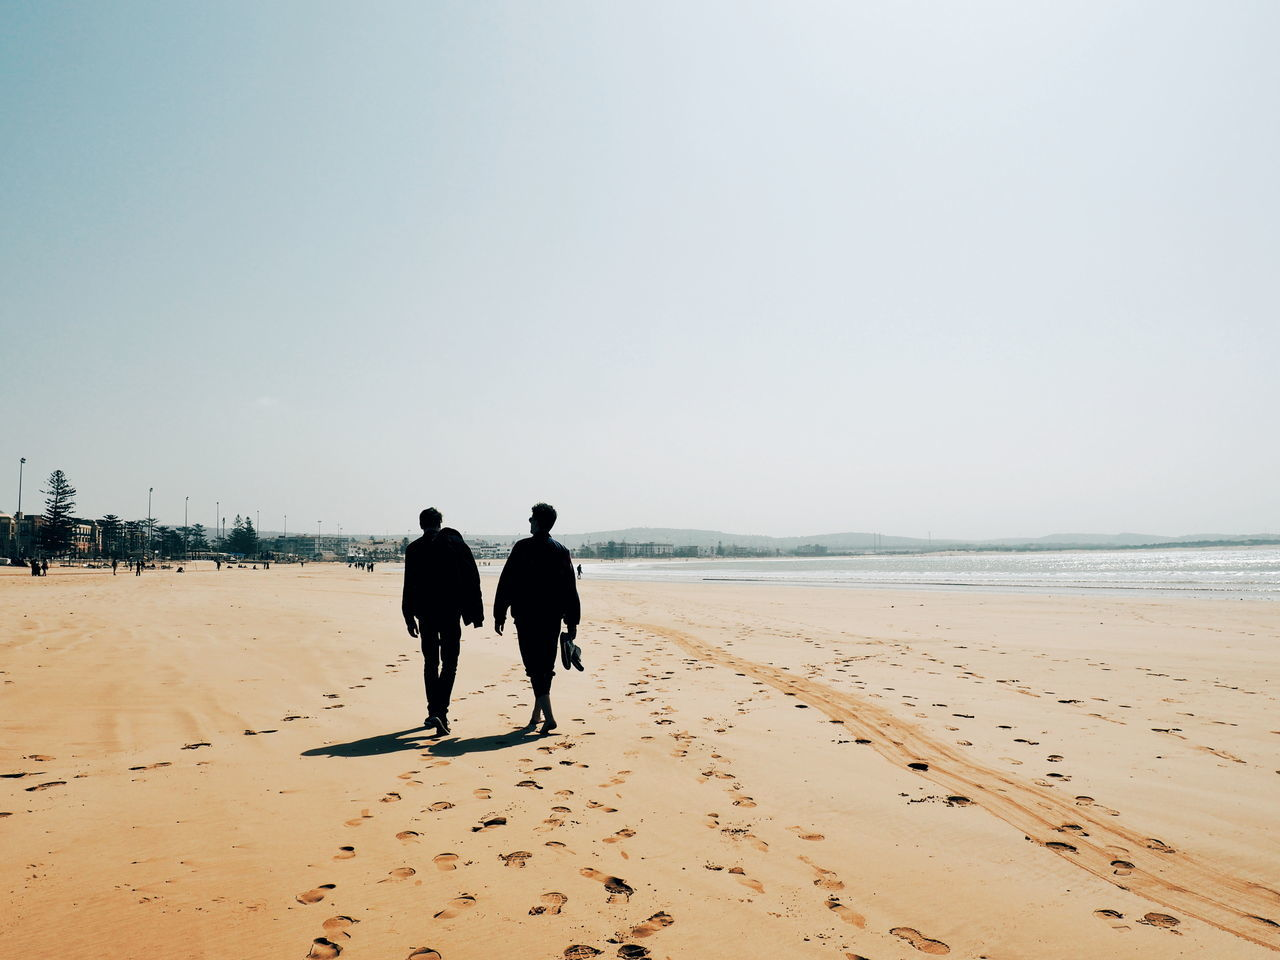 beach, sea, sand, two people, real people, clear sky, water, horizon over water, men, silhouette, sky, togetherness, rear view, nature, outdoors, beauty in nature, people, day, adult, mammal, adults only